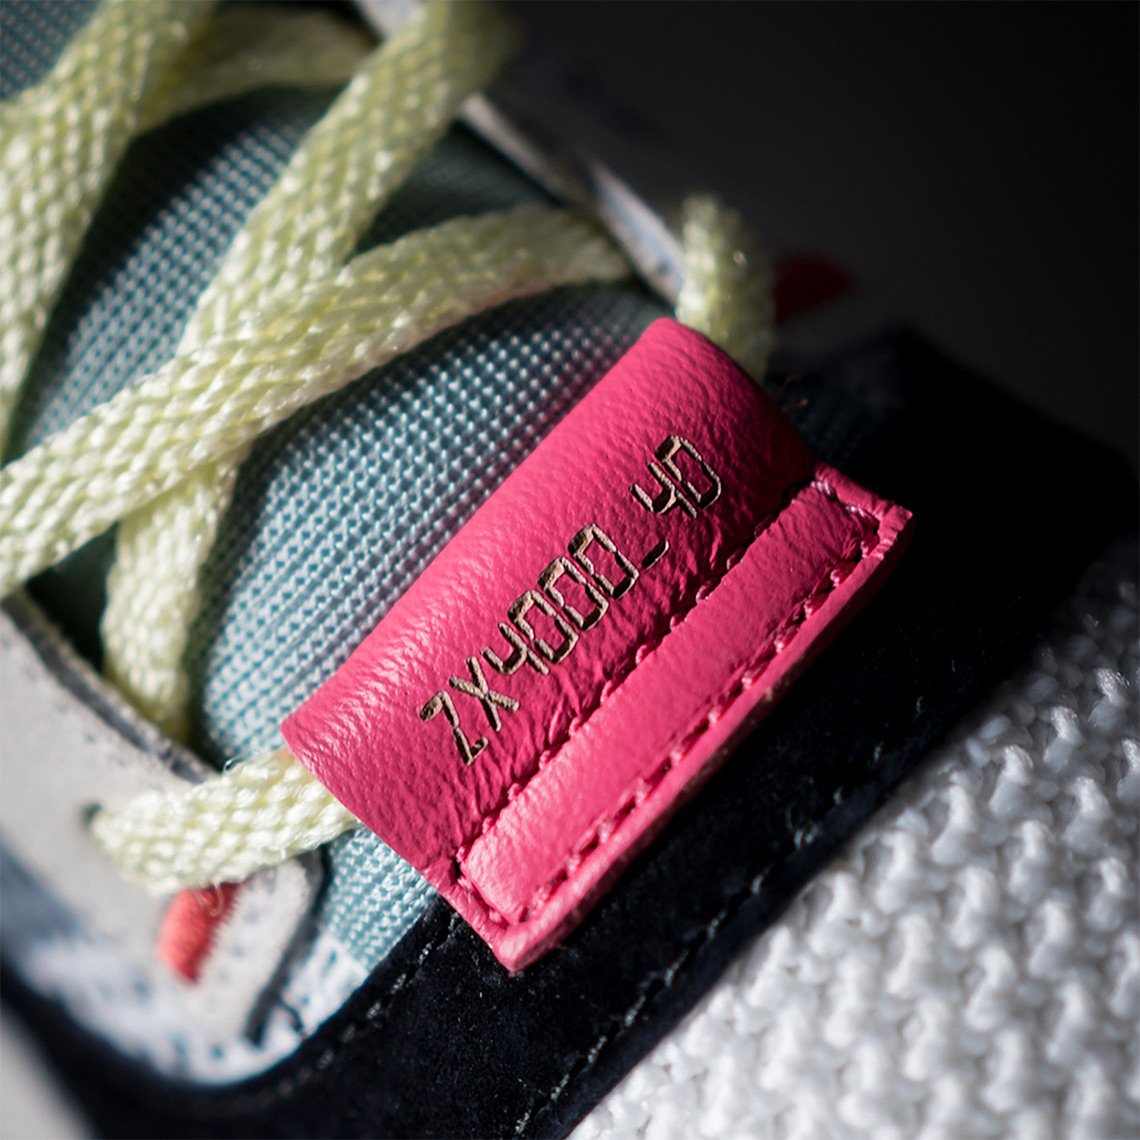 7ec5e6fd5 Peep a first look at the all new ZX4000 4D here and expect its release in  stores this Fall or Winter.